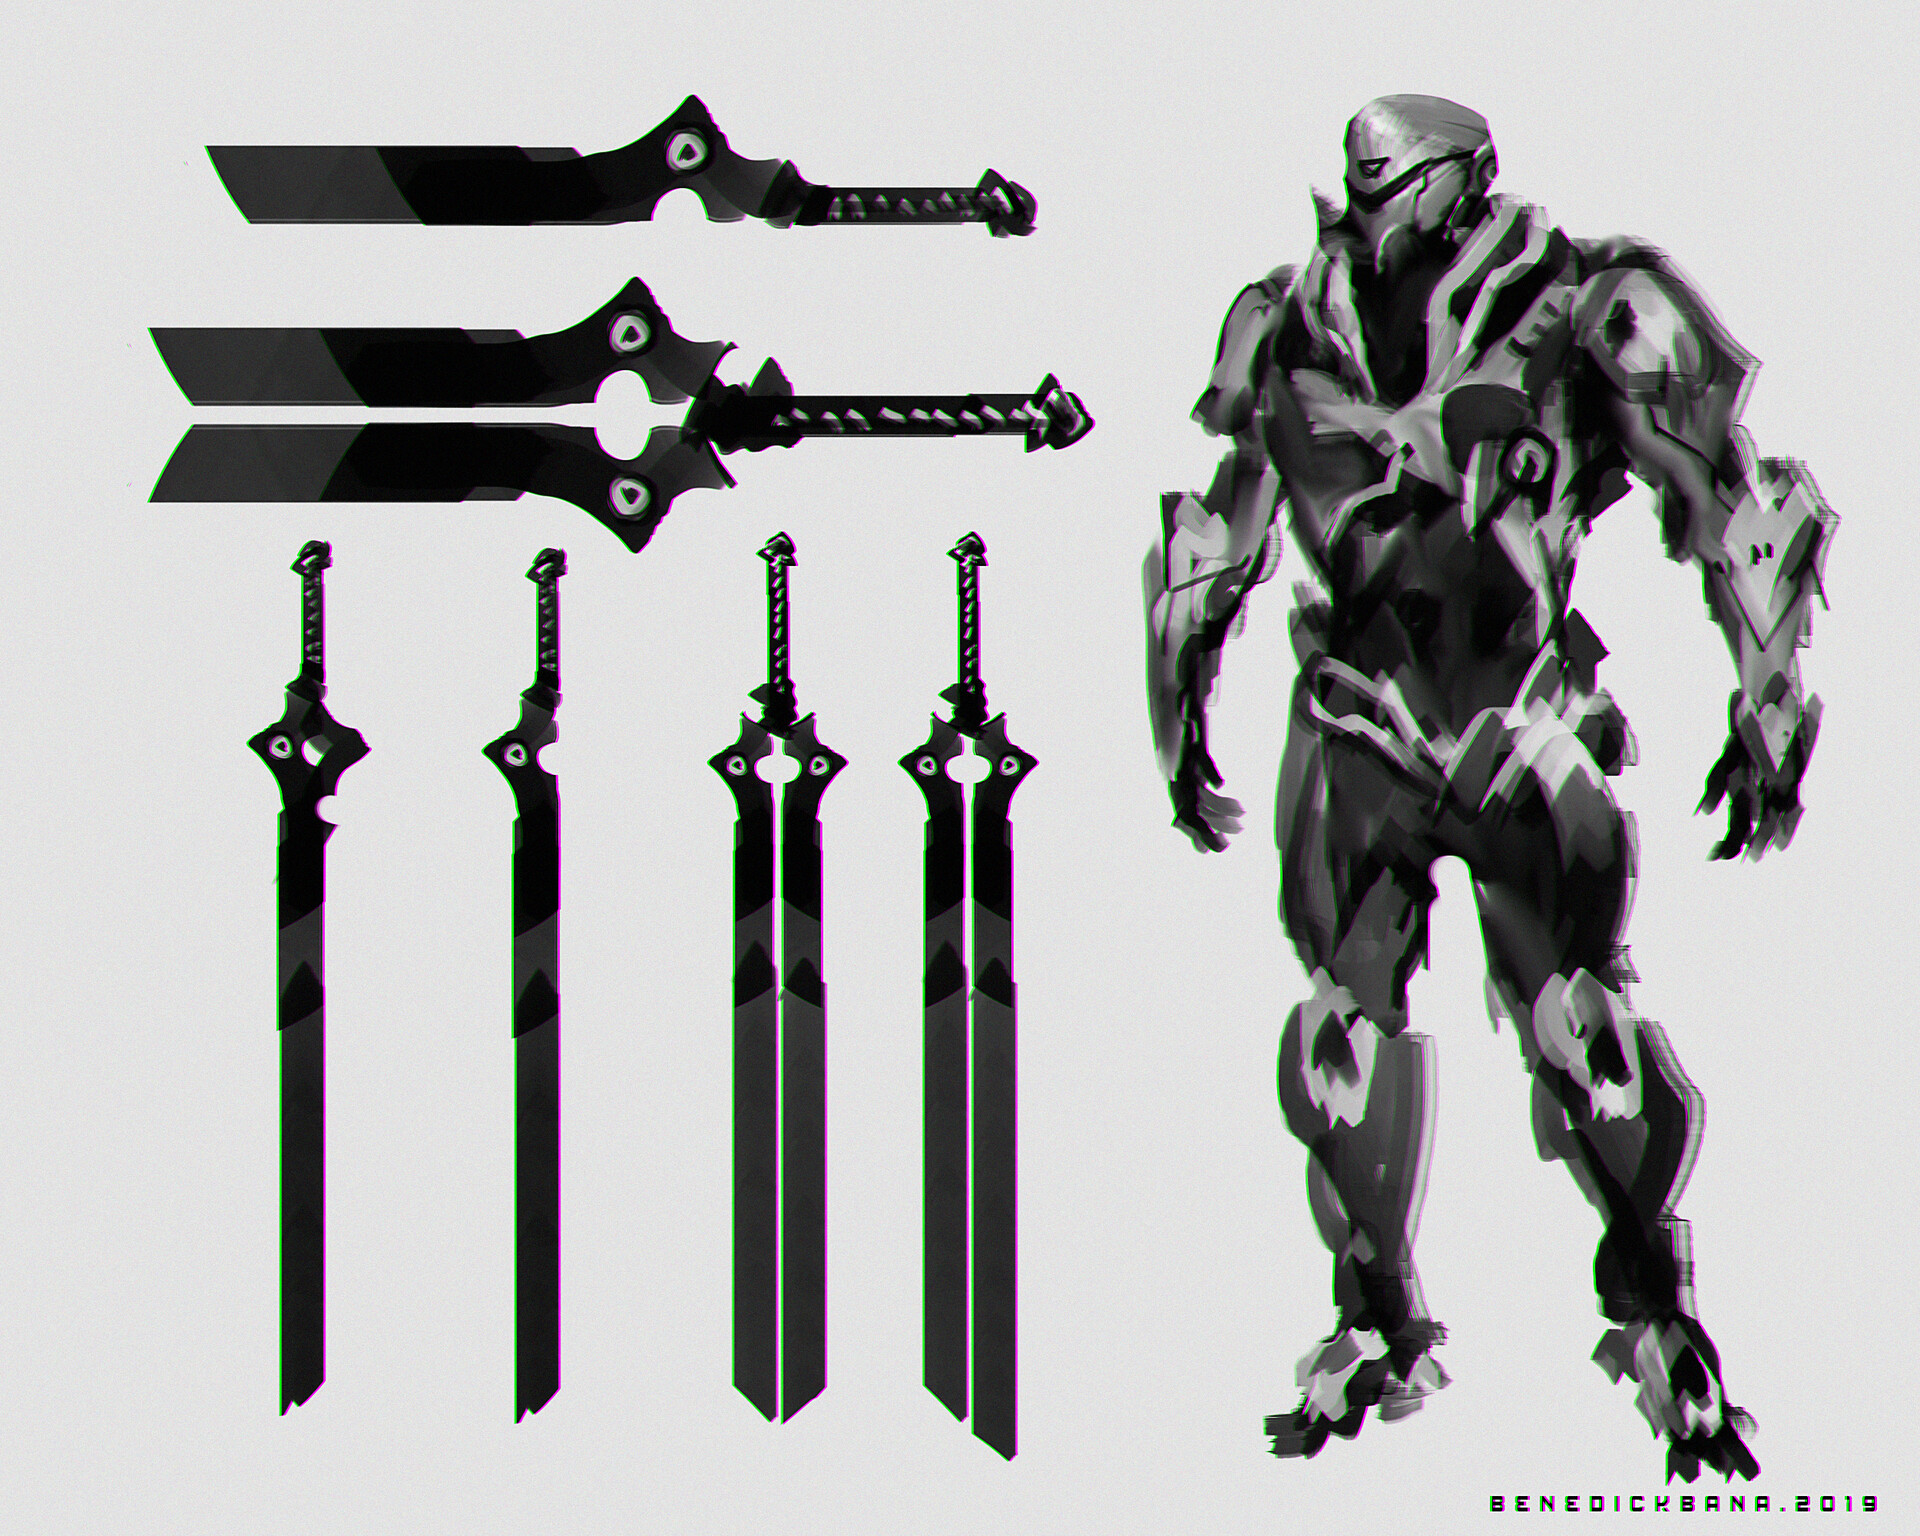 HAVOK CHARACTER DESIGN with BLADE Weapon variant